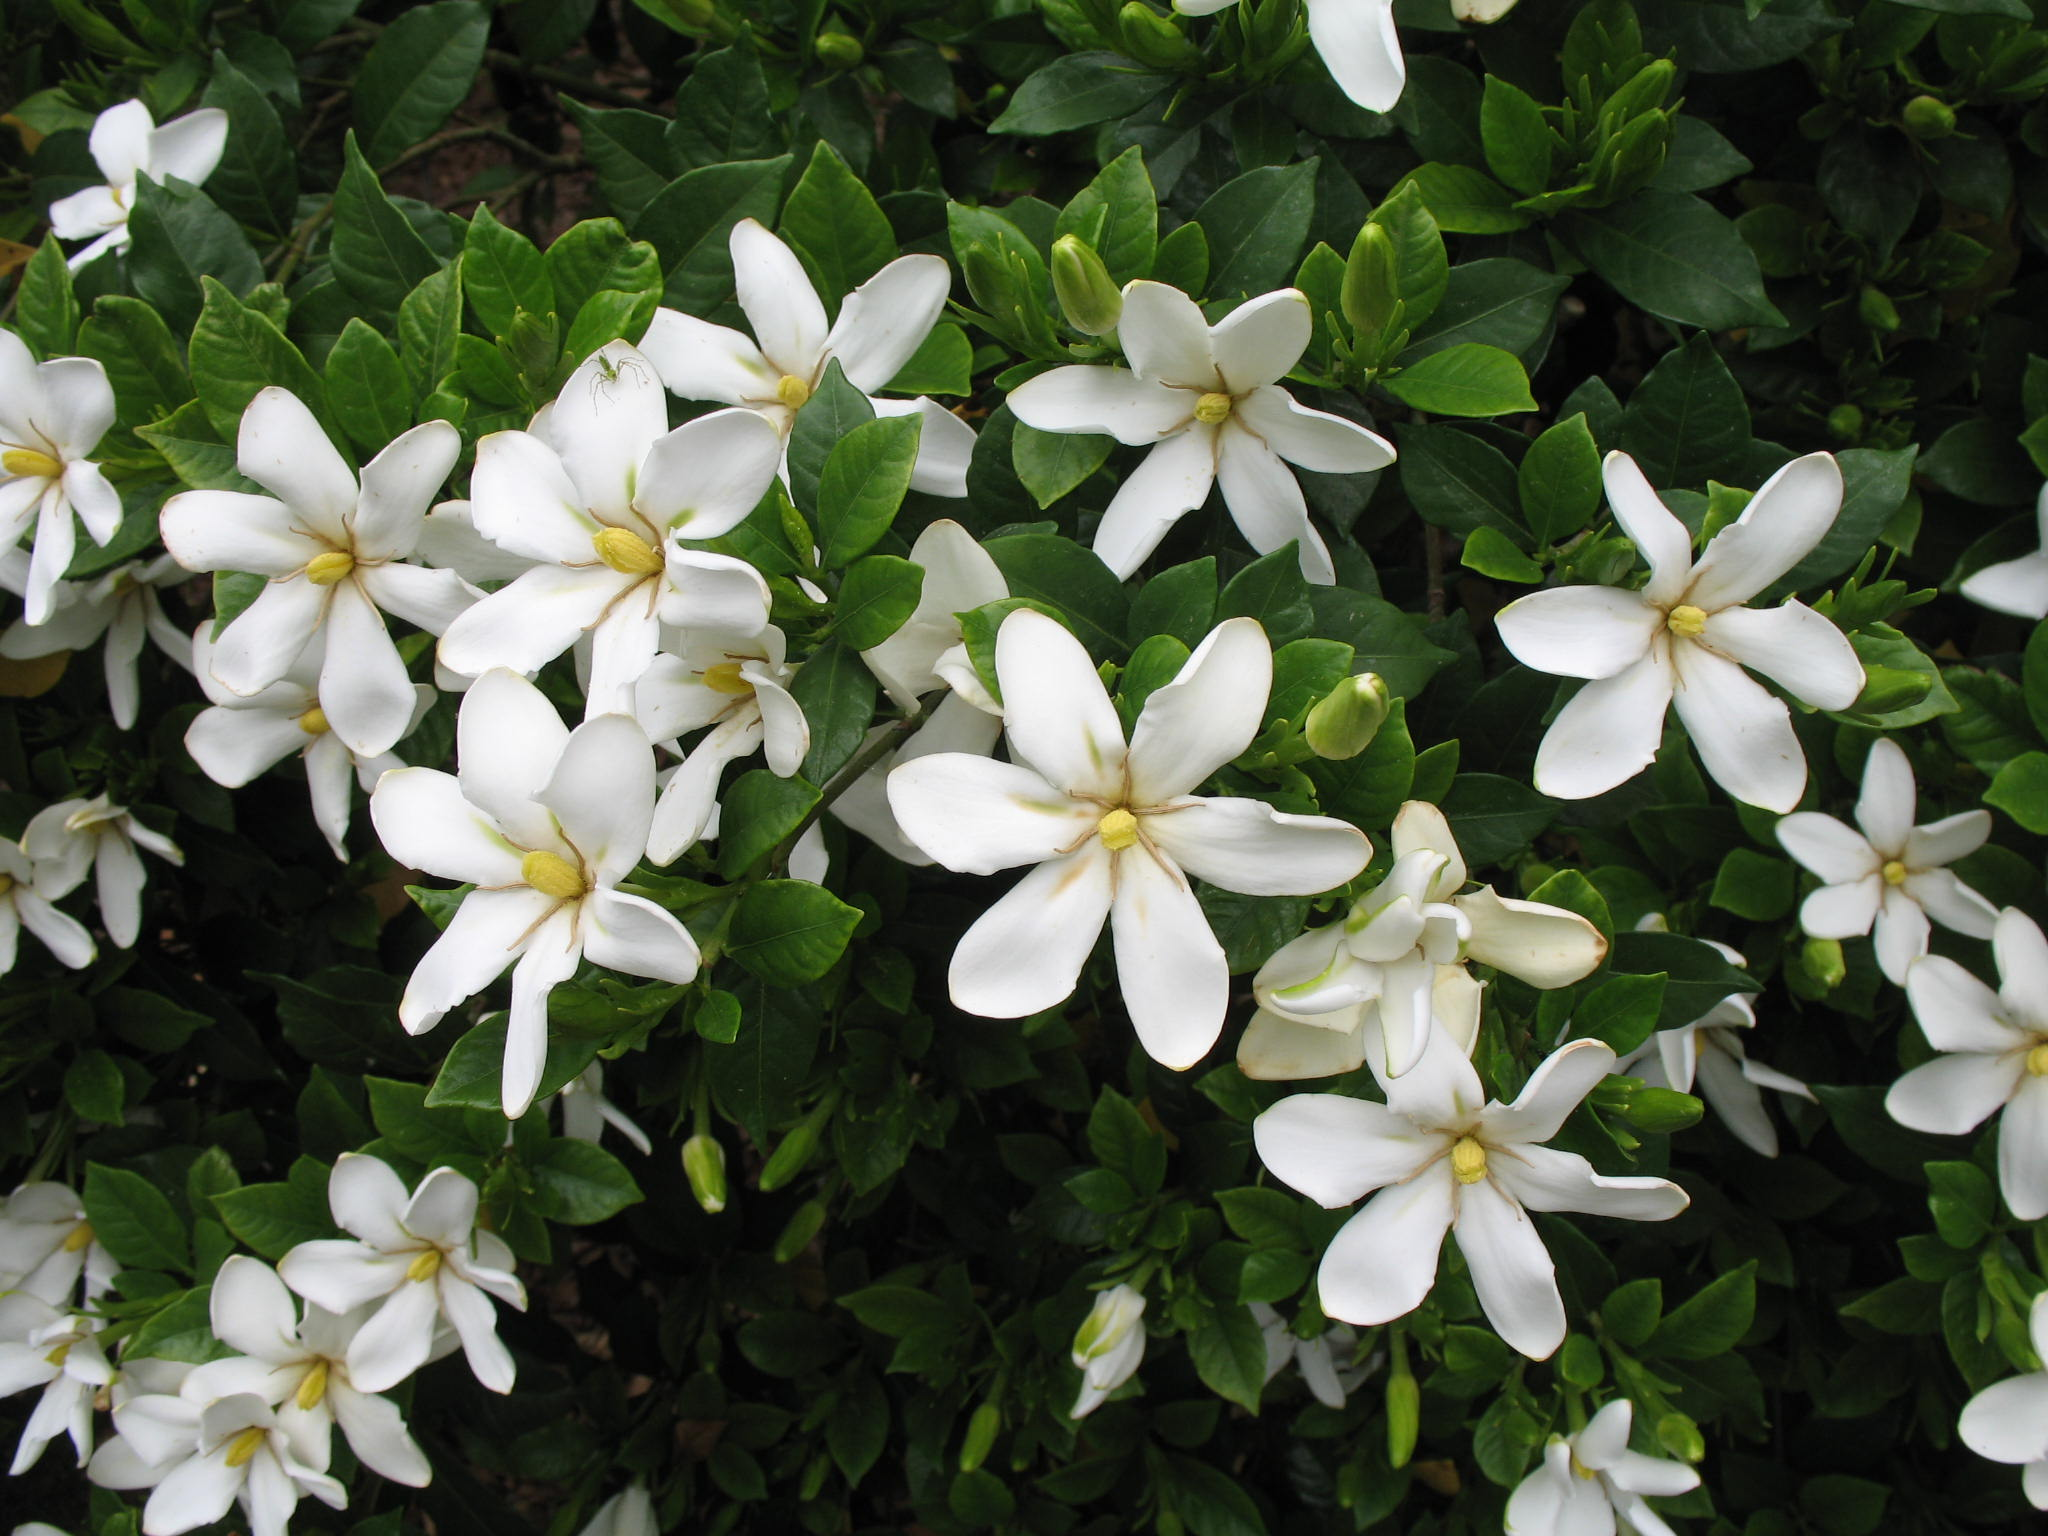 Gardenia augusta 'Shooting Star'  / Gardenia augusta 'Shooting Star'